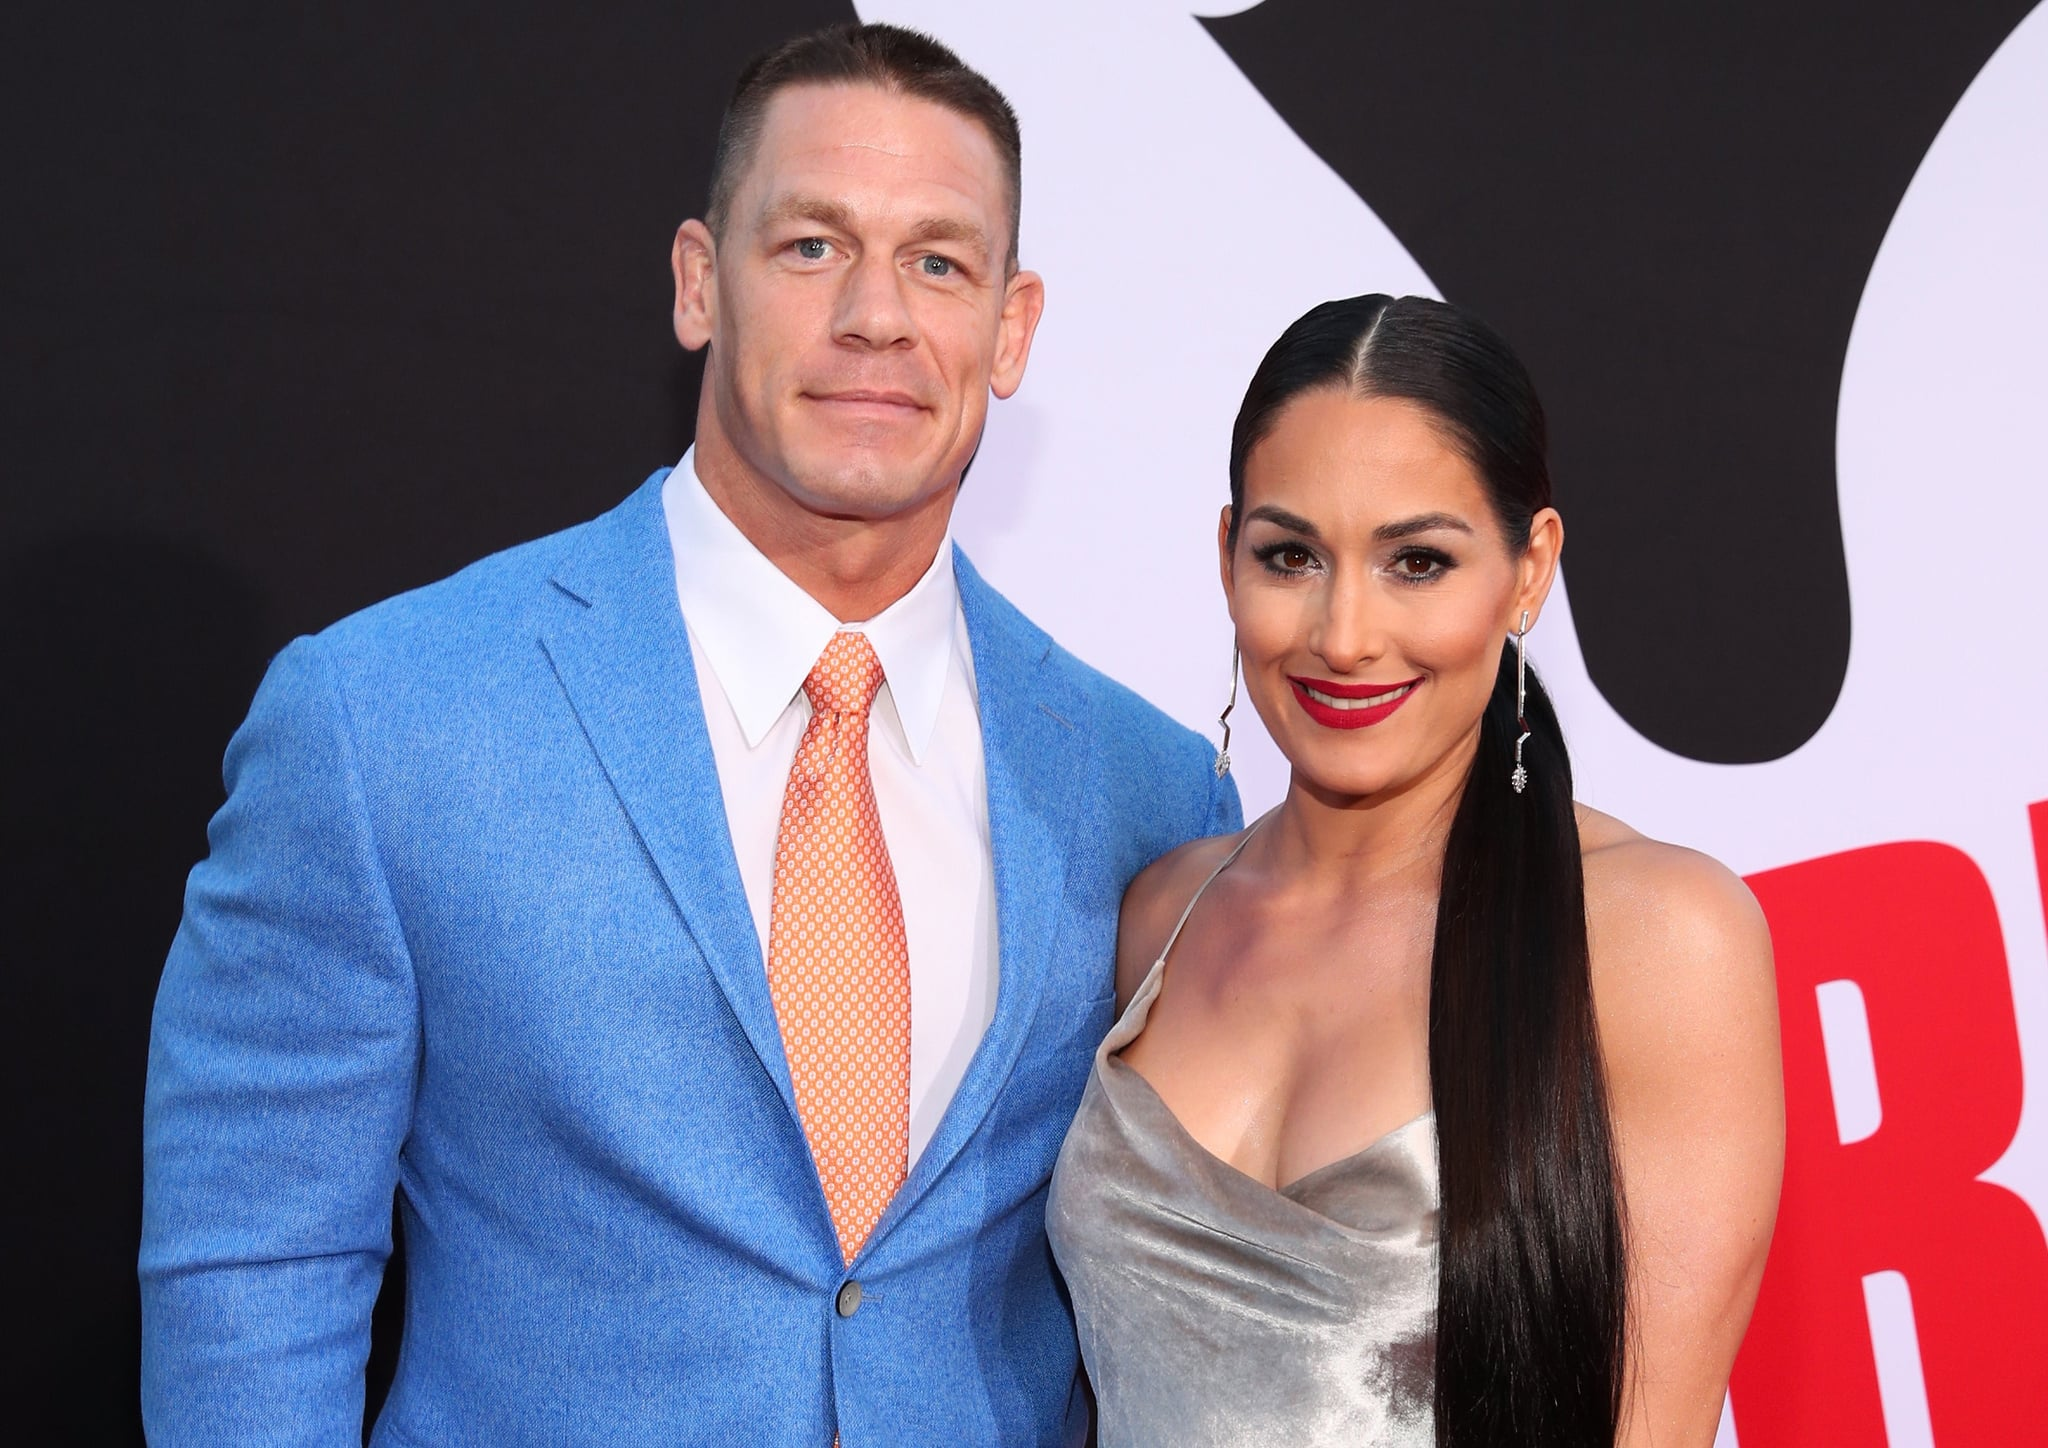 John Cena and Nikki Bella Breakup Details | POPSUGAR Celebrity